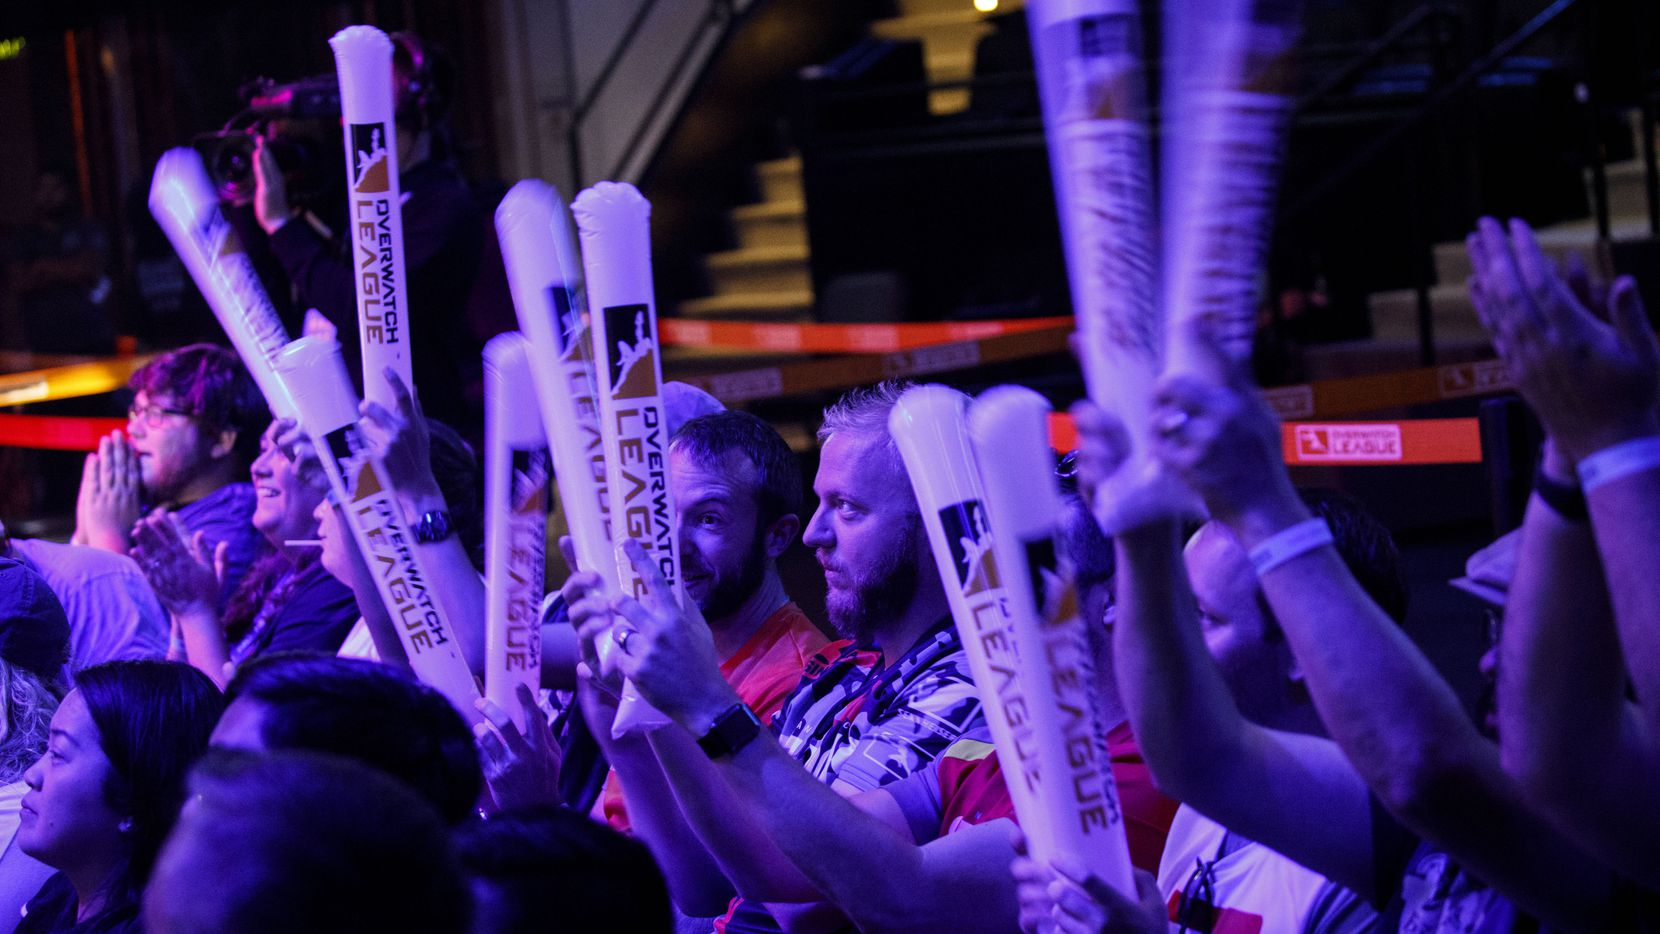 Overwatch fans cheer during the Overwatch League team match between the Dallas Fuel and New York Excelsior on Saturday, June 29, 2019 in Burbank, Calif.